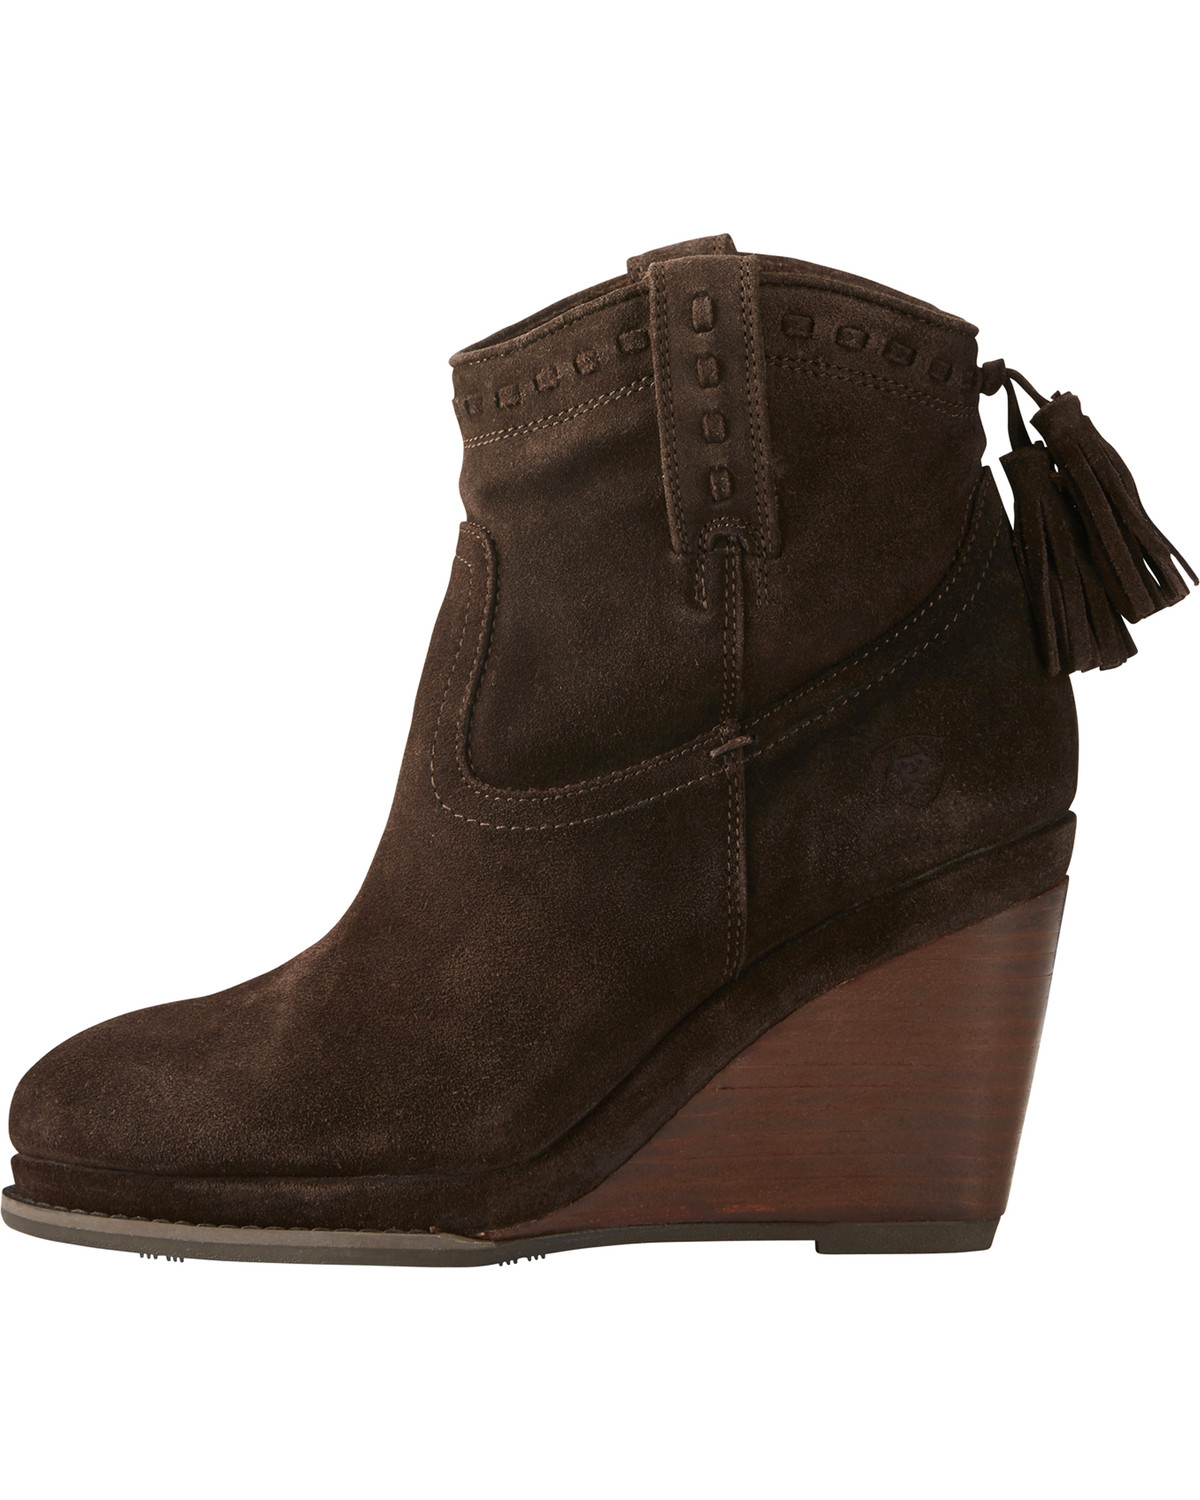 To acquire Brown Dark wedge booties picture trends